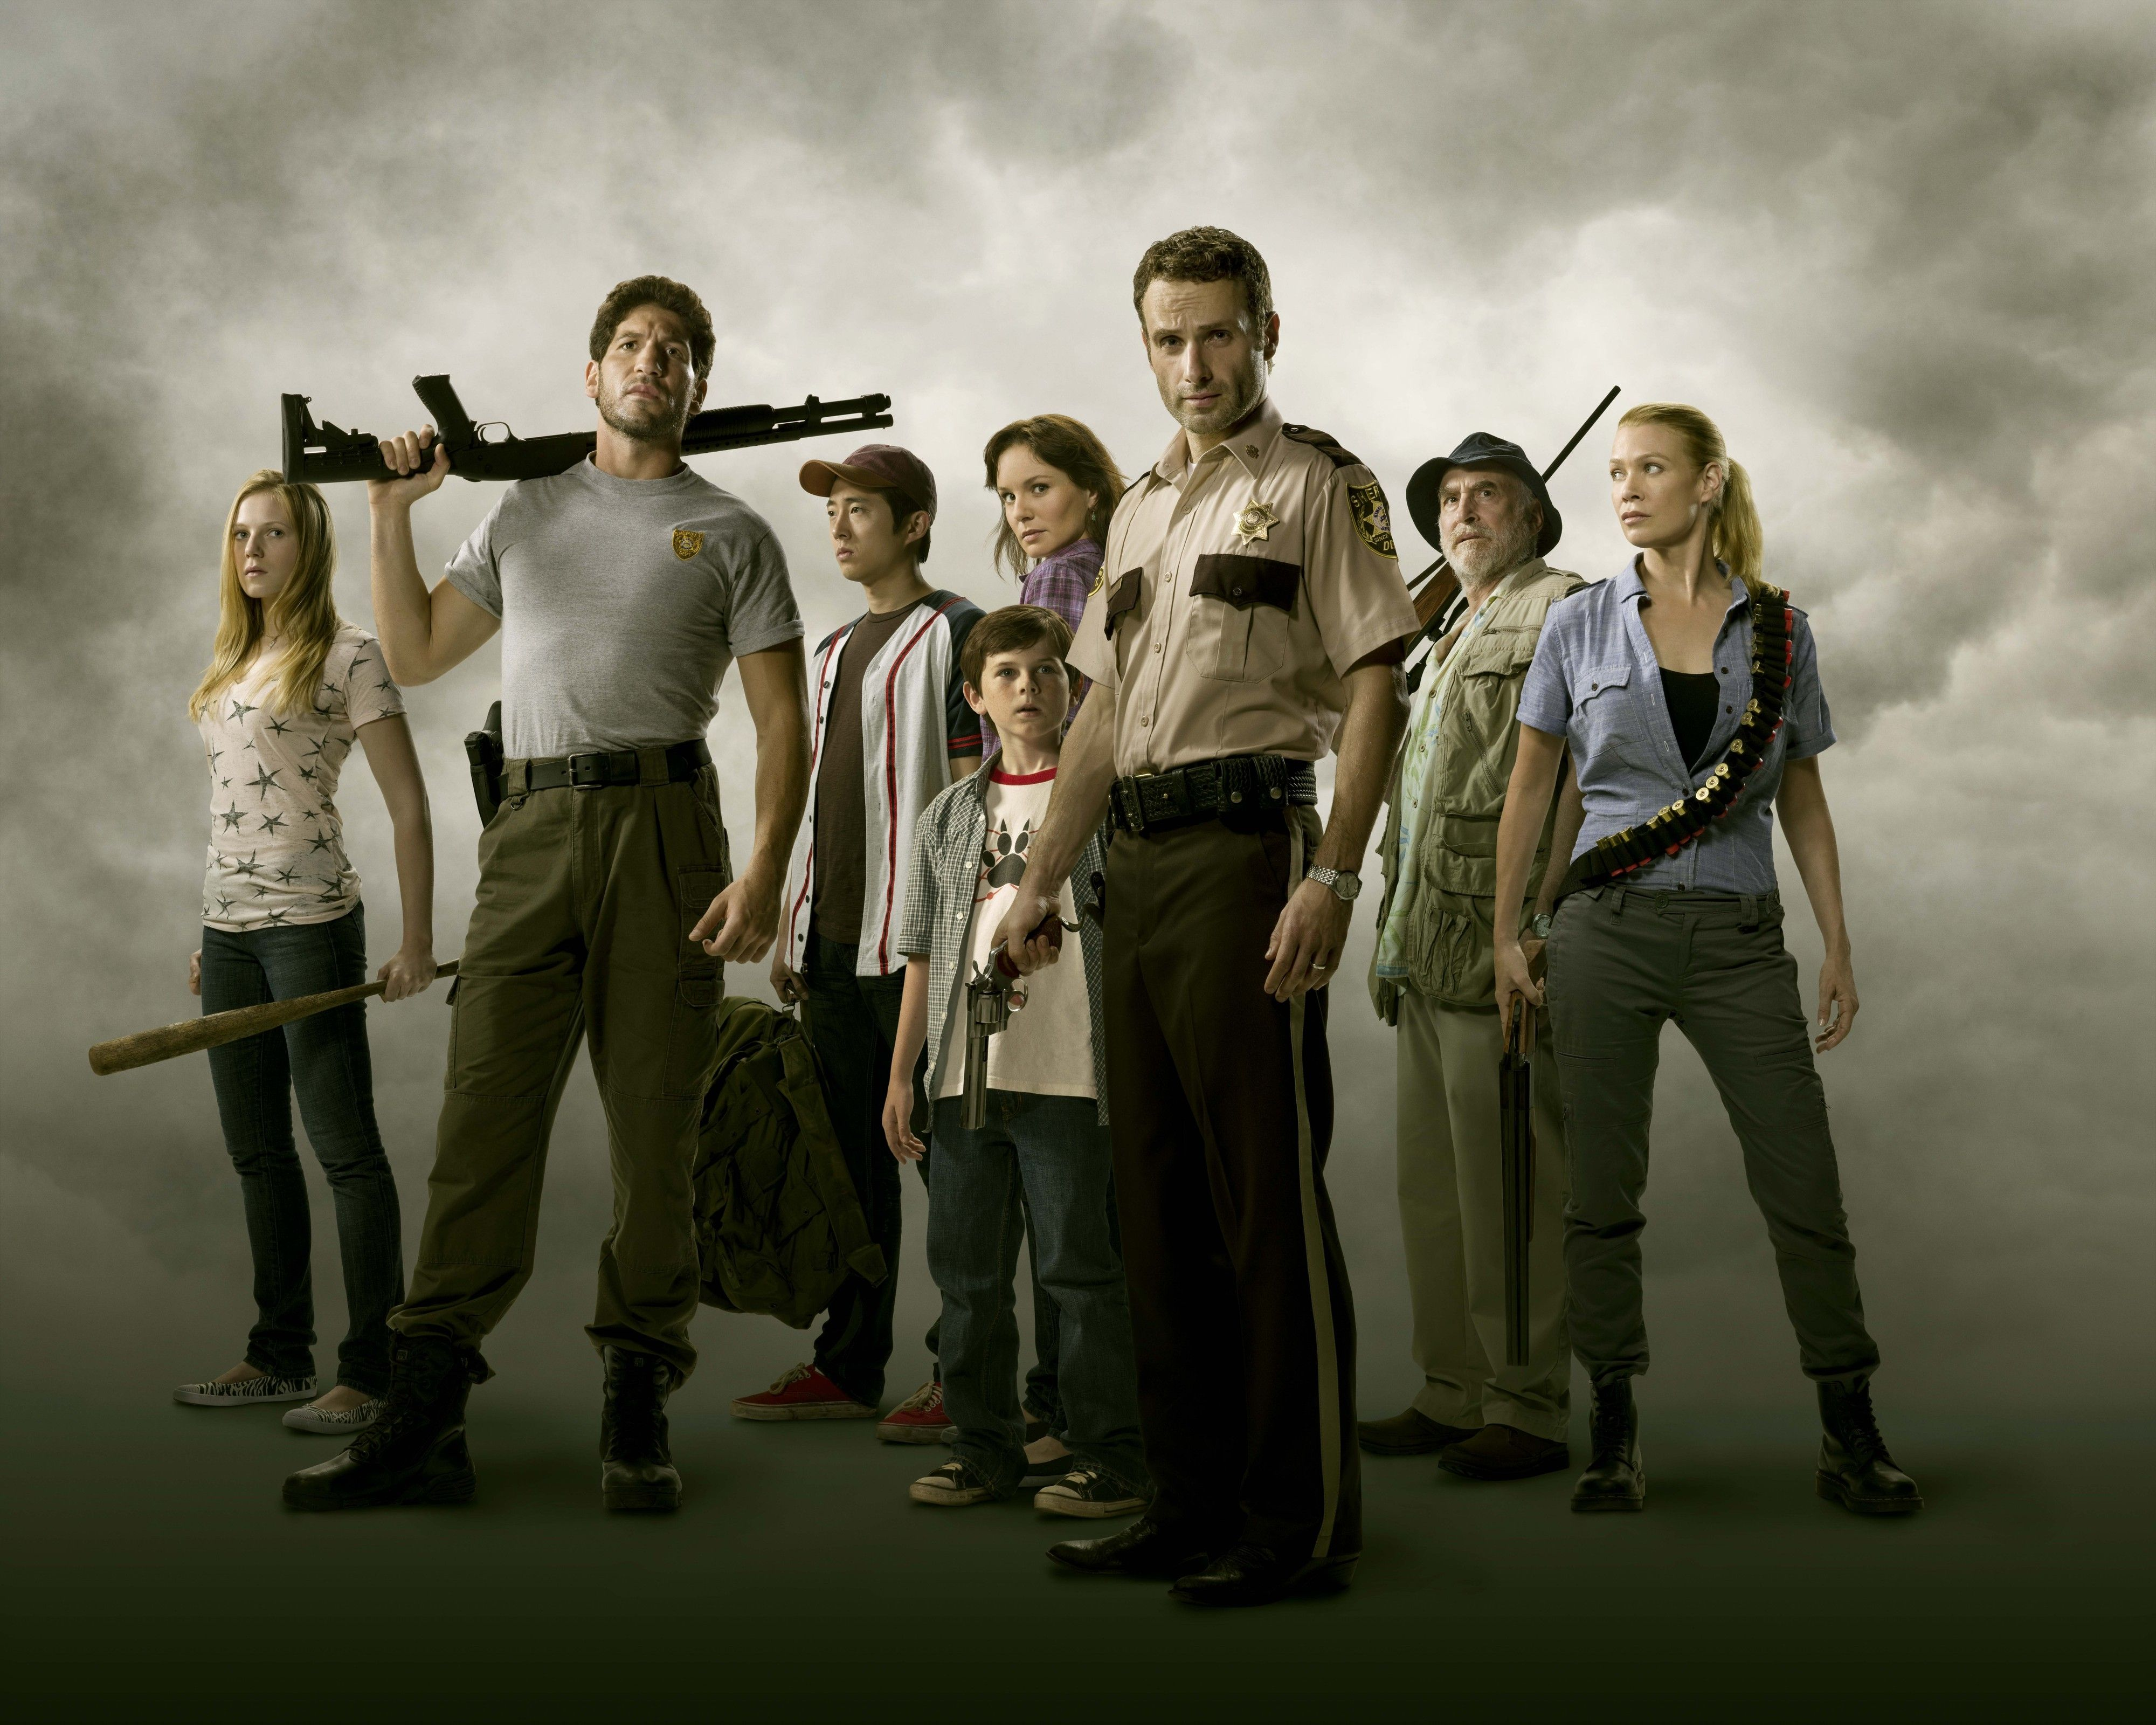 Fgt The Walking Dead Animated Wallpaper Widescreen